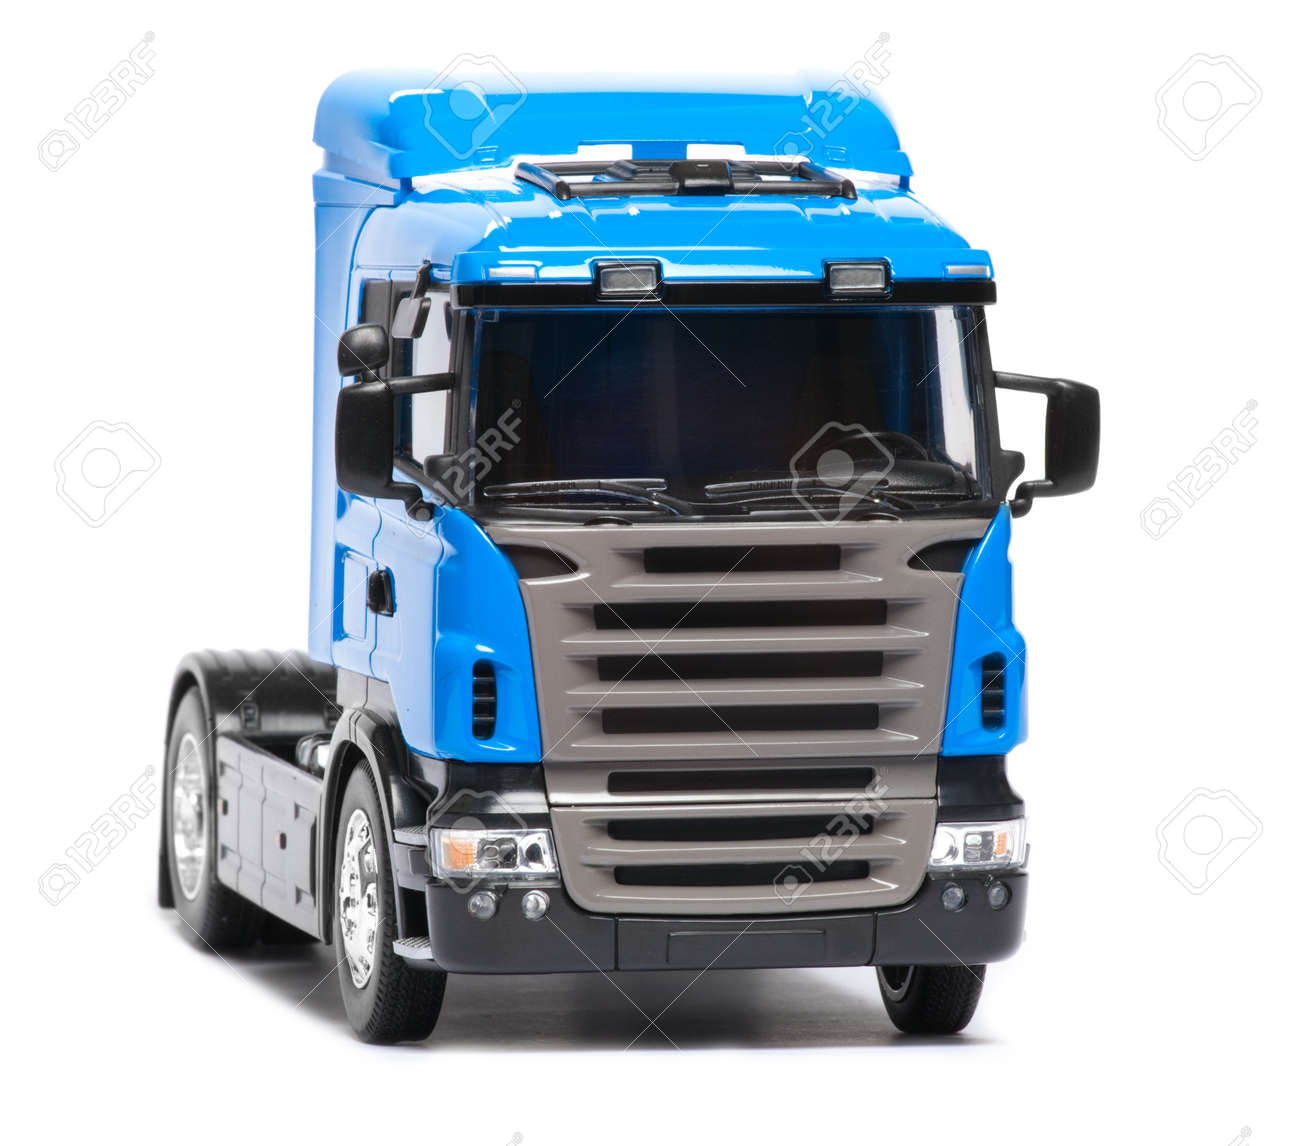 toy heavy truck isolated over white background Stock Photo - 8953389